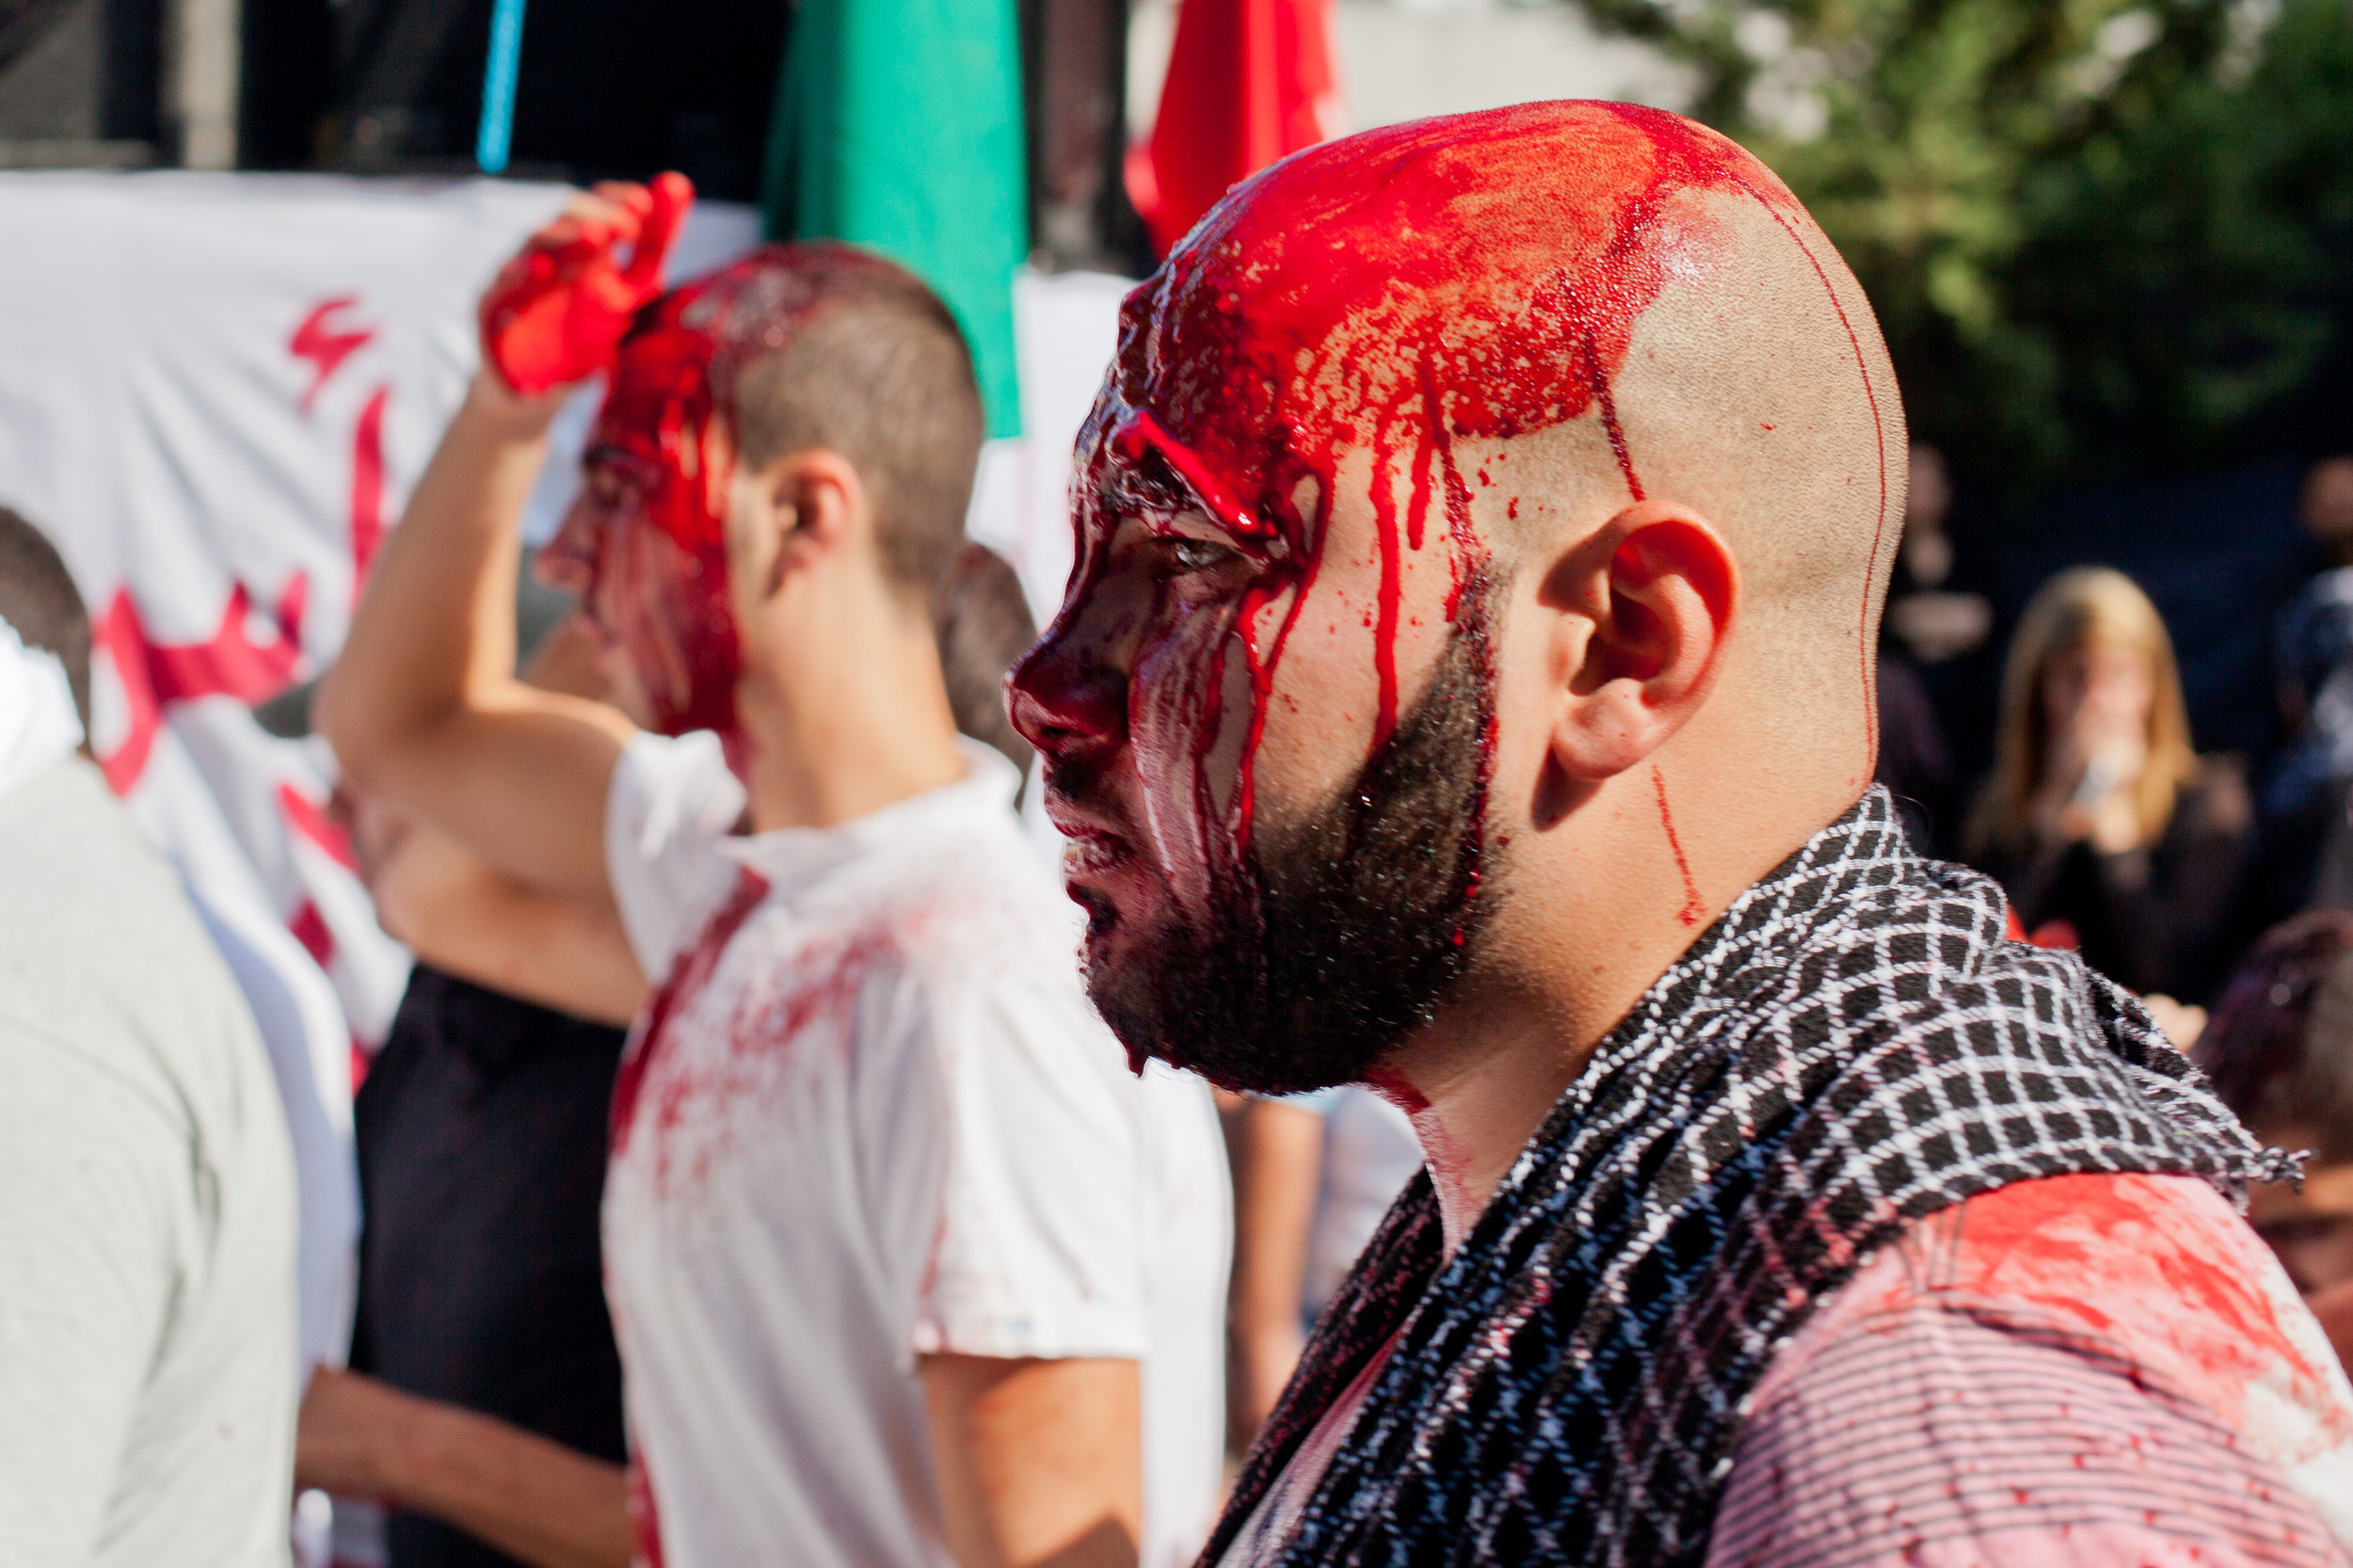 A blood-soaked man marches in this Ashura procession. (Courtesy James Haines-Young)